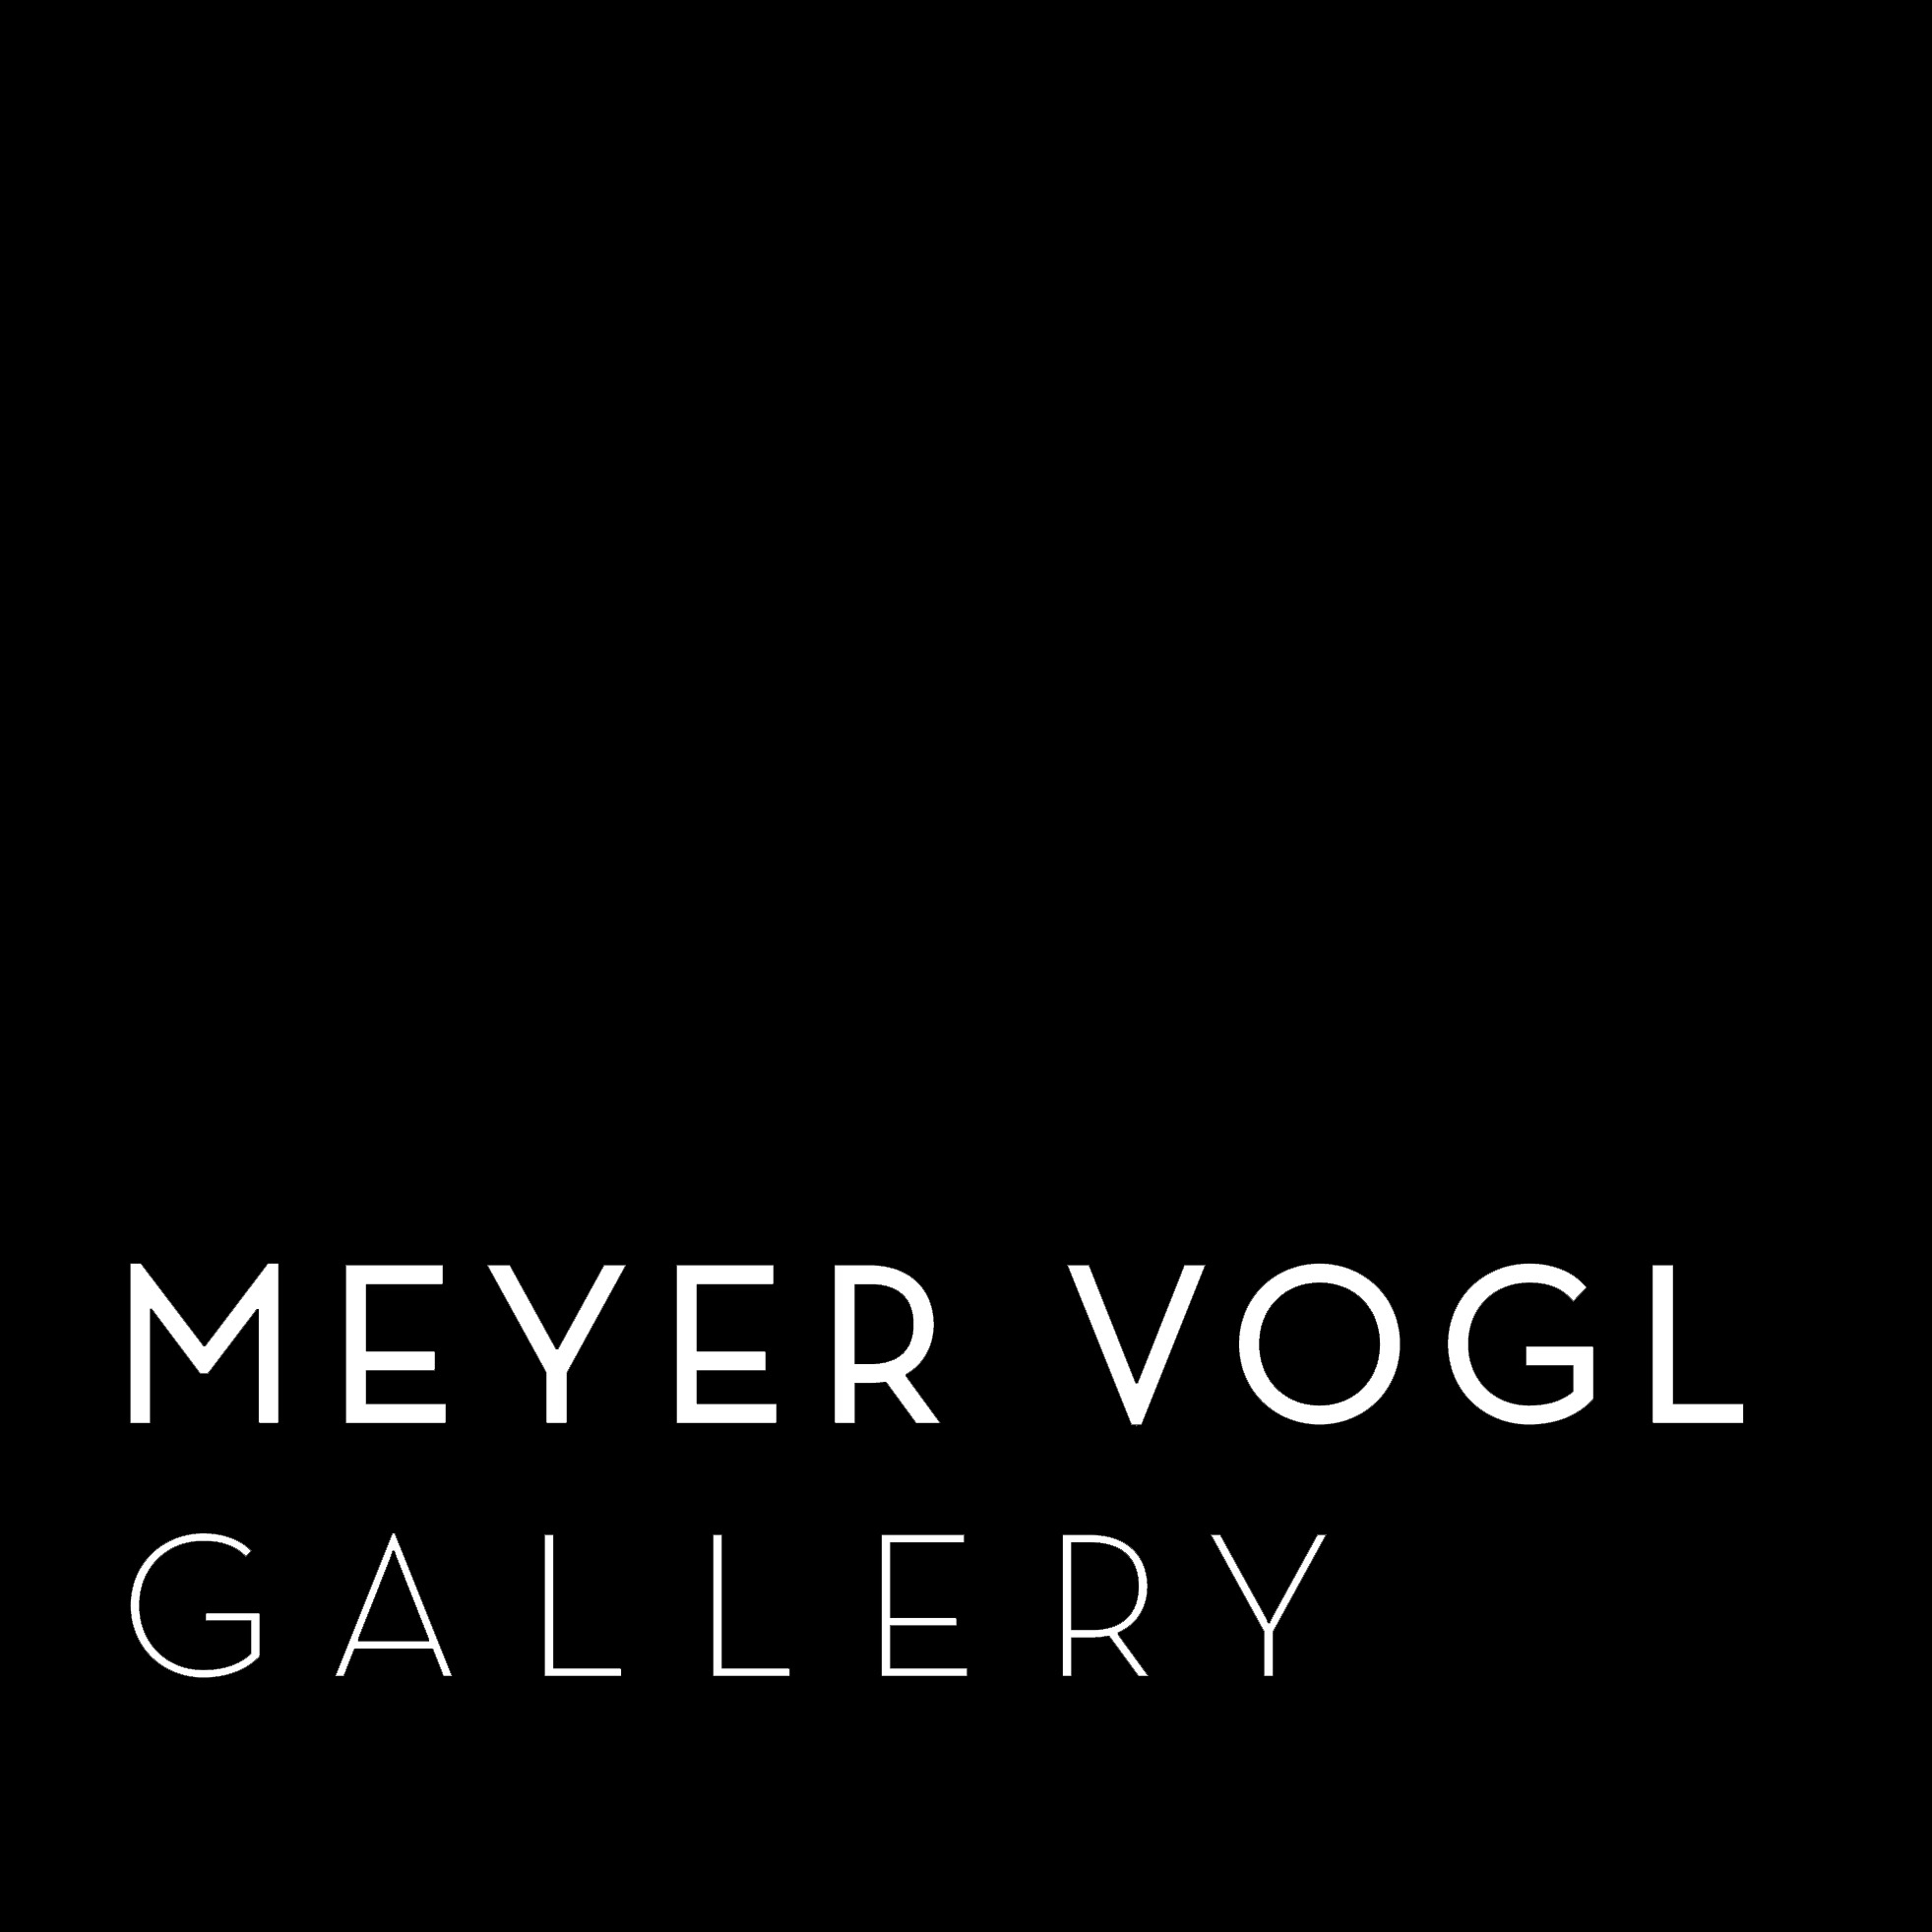 Meyer Vogl Gallery